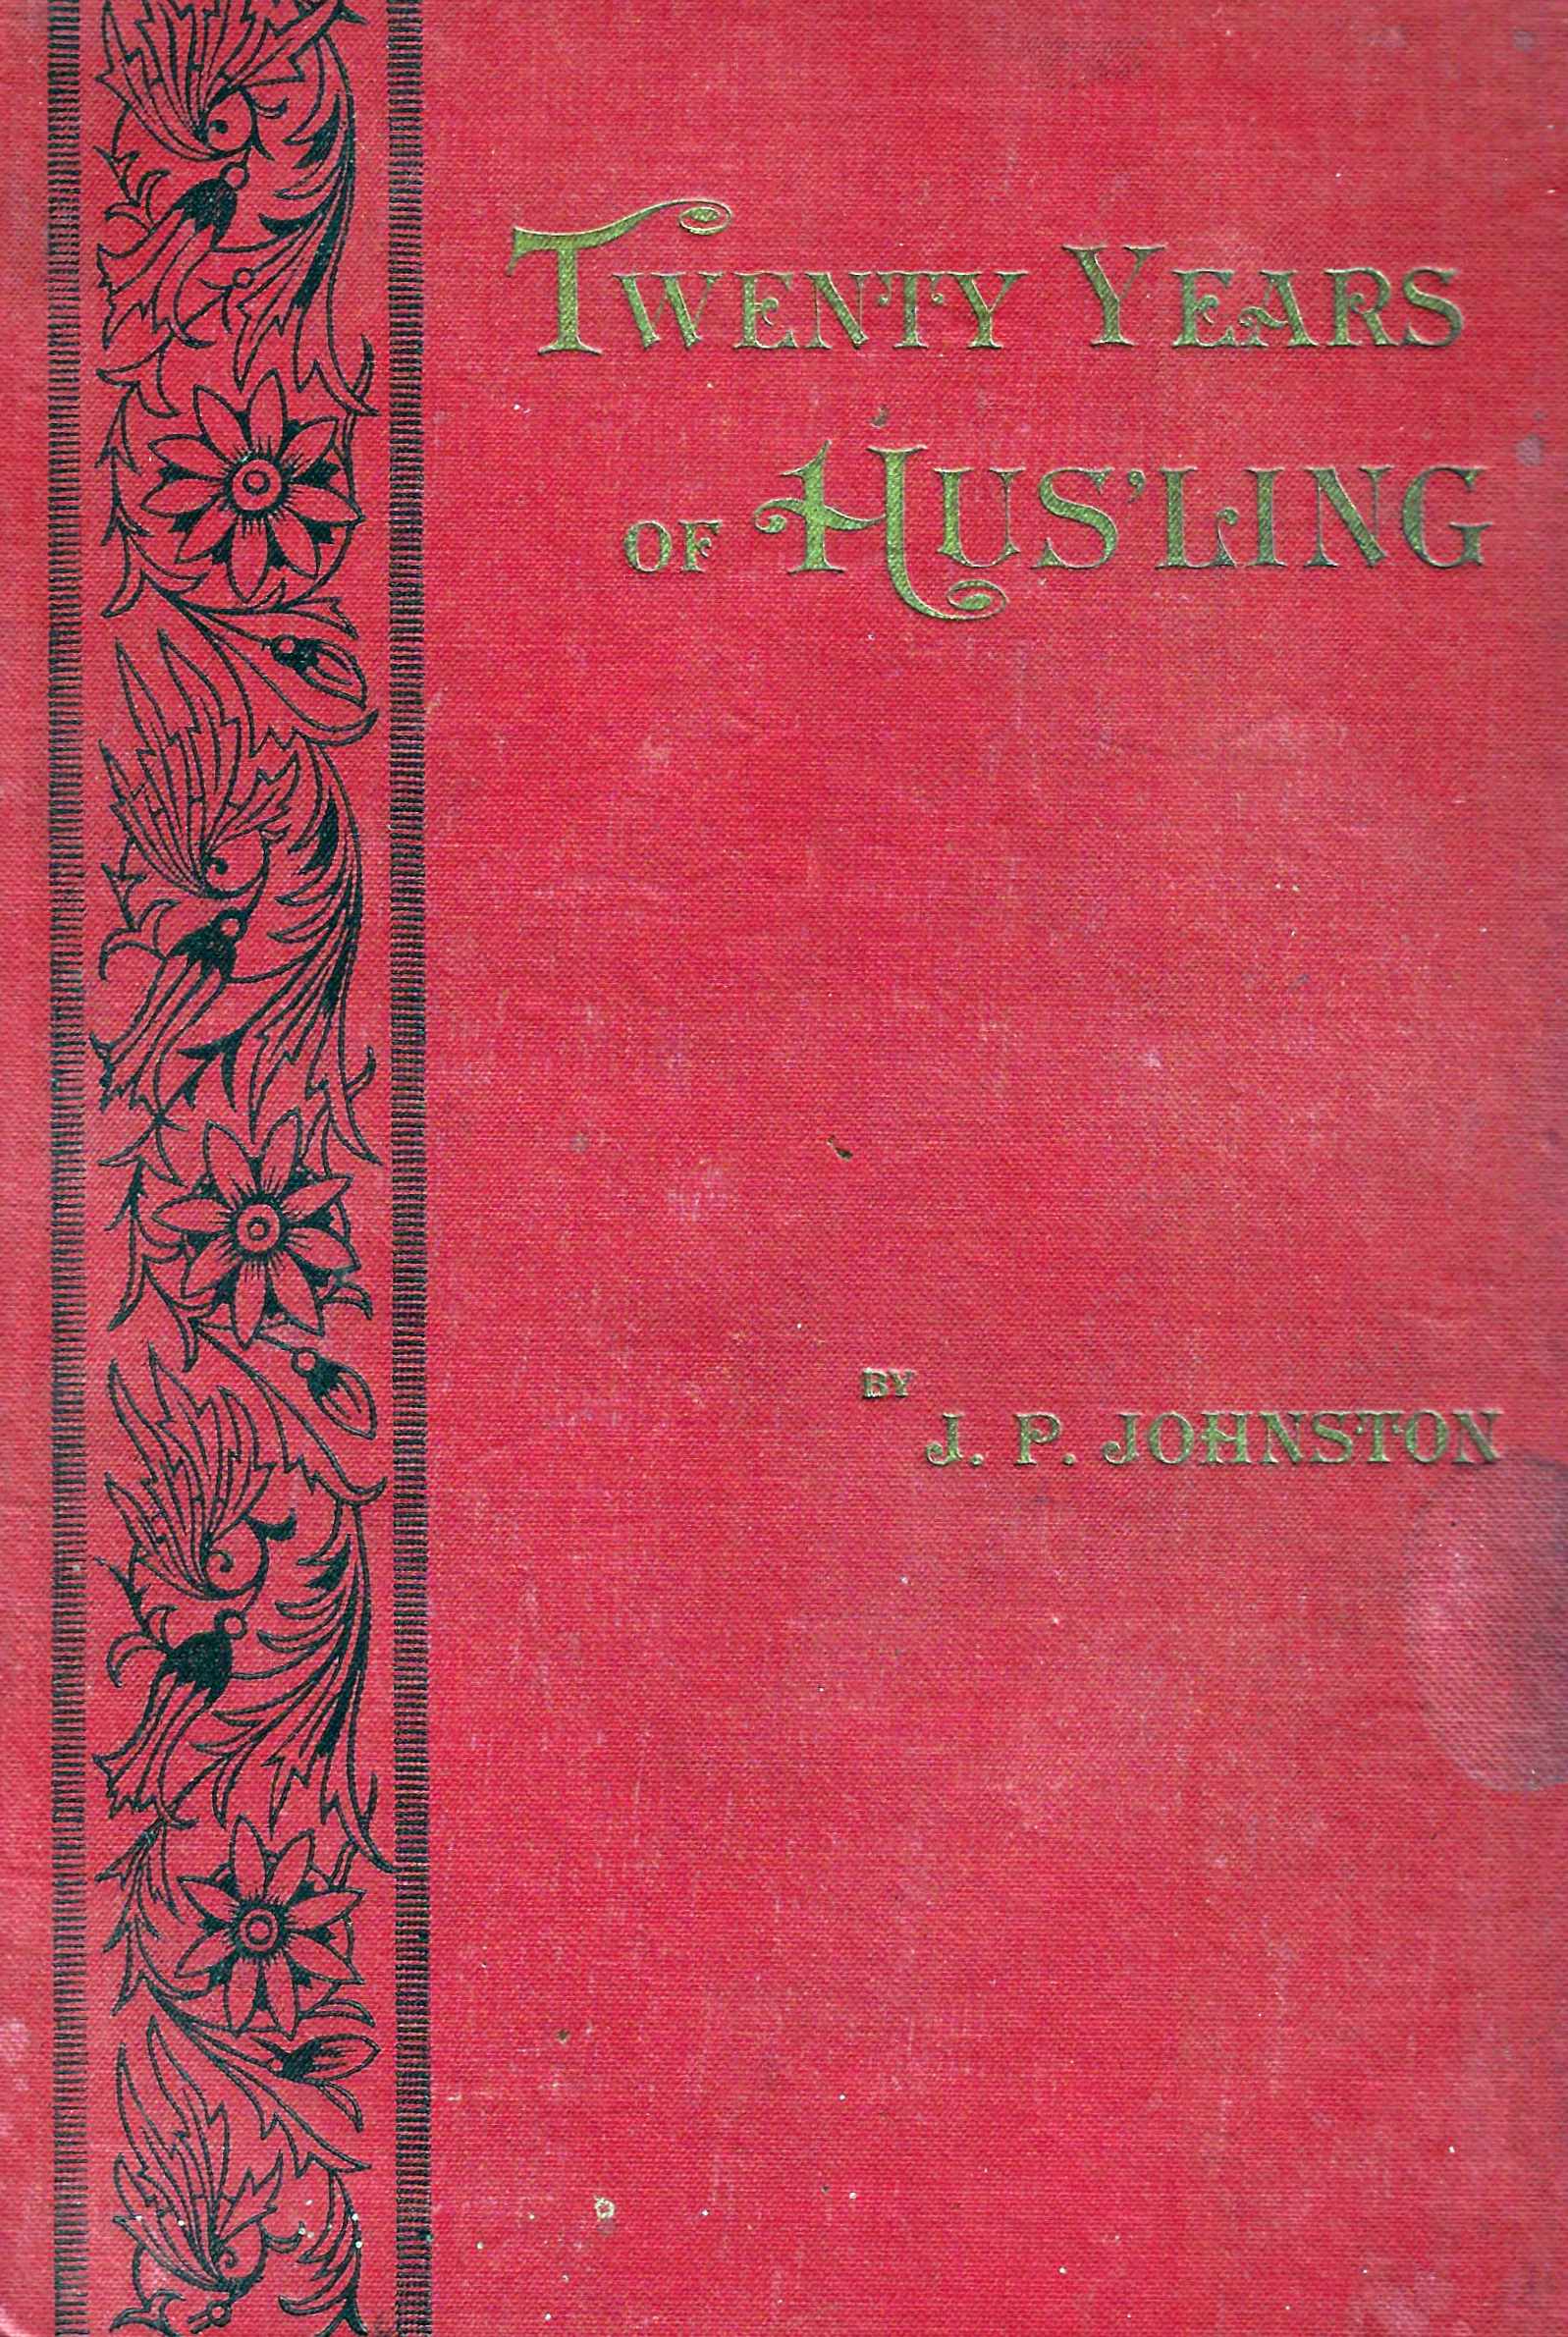 Twenty Years of Husling by J.P. Johnston (1887)